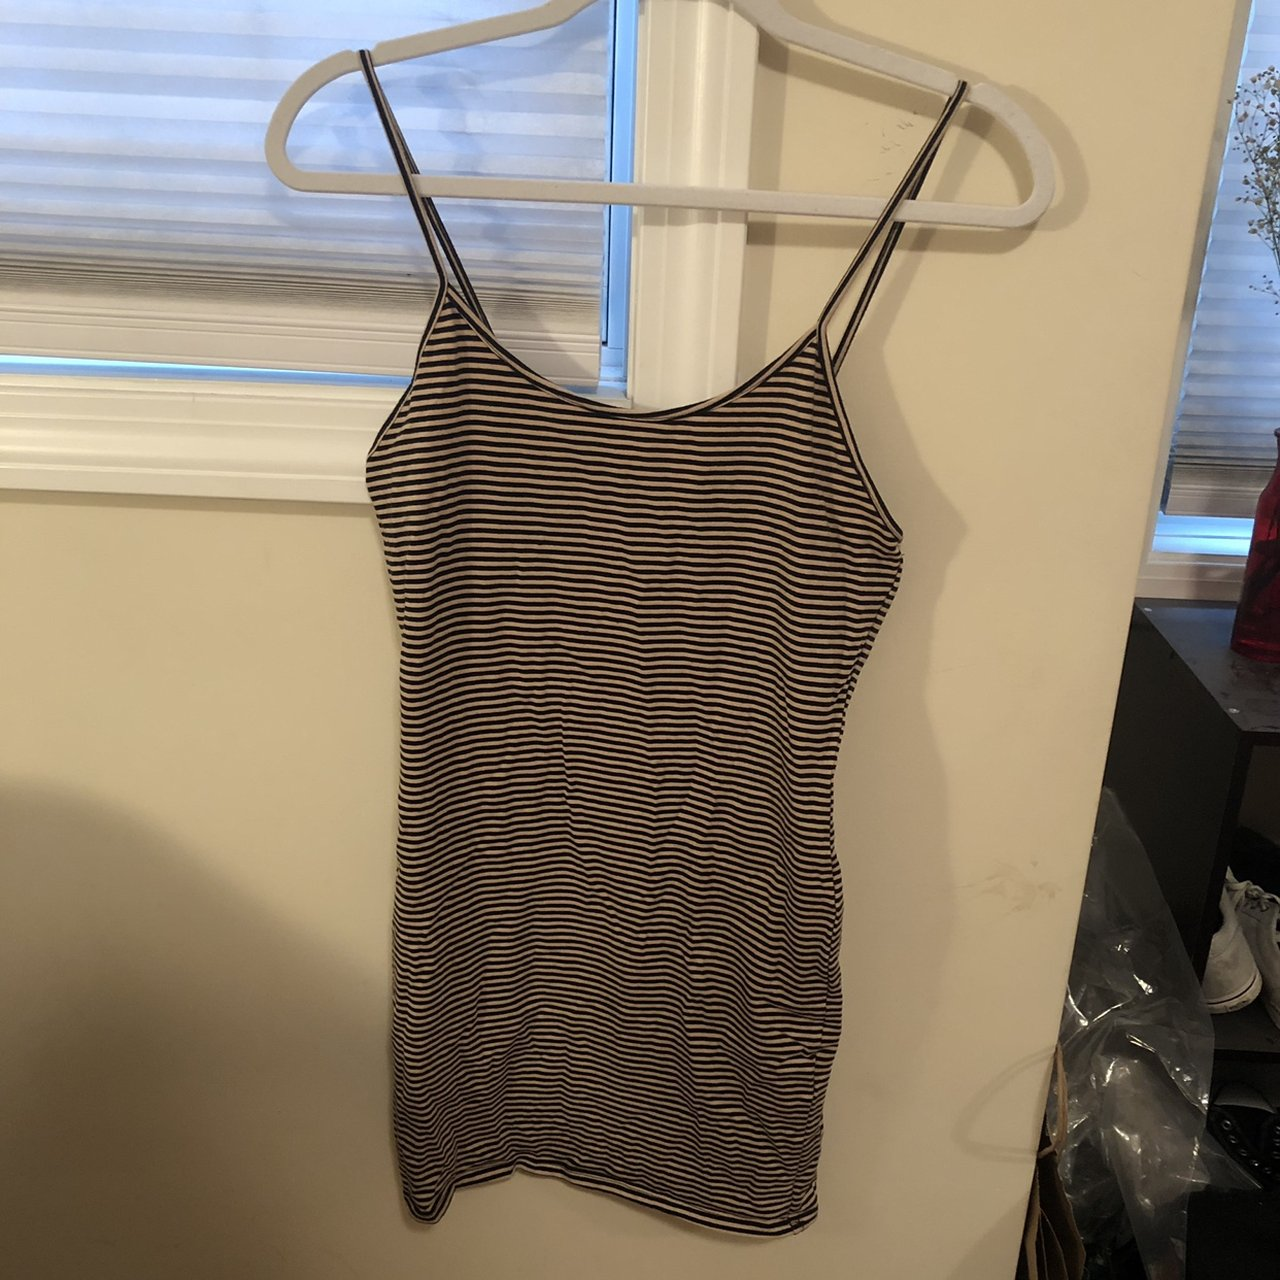 65c3eaeacf8 Forever 21 tan and black striped bodycon dress